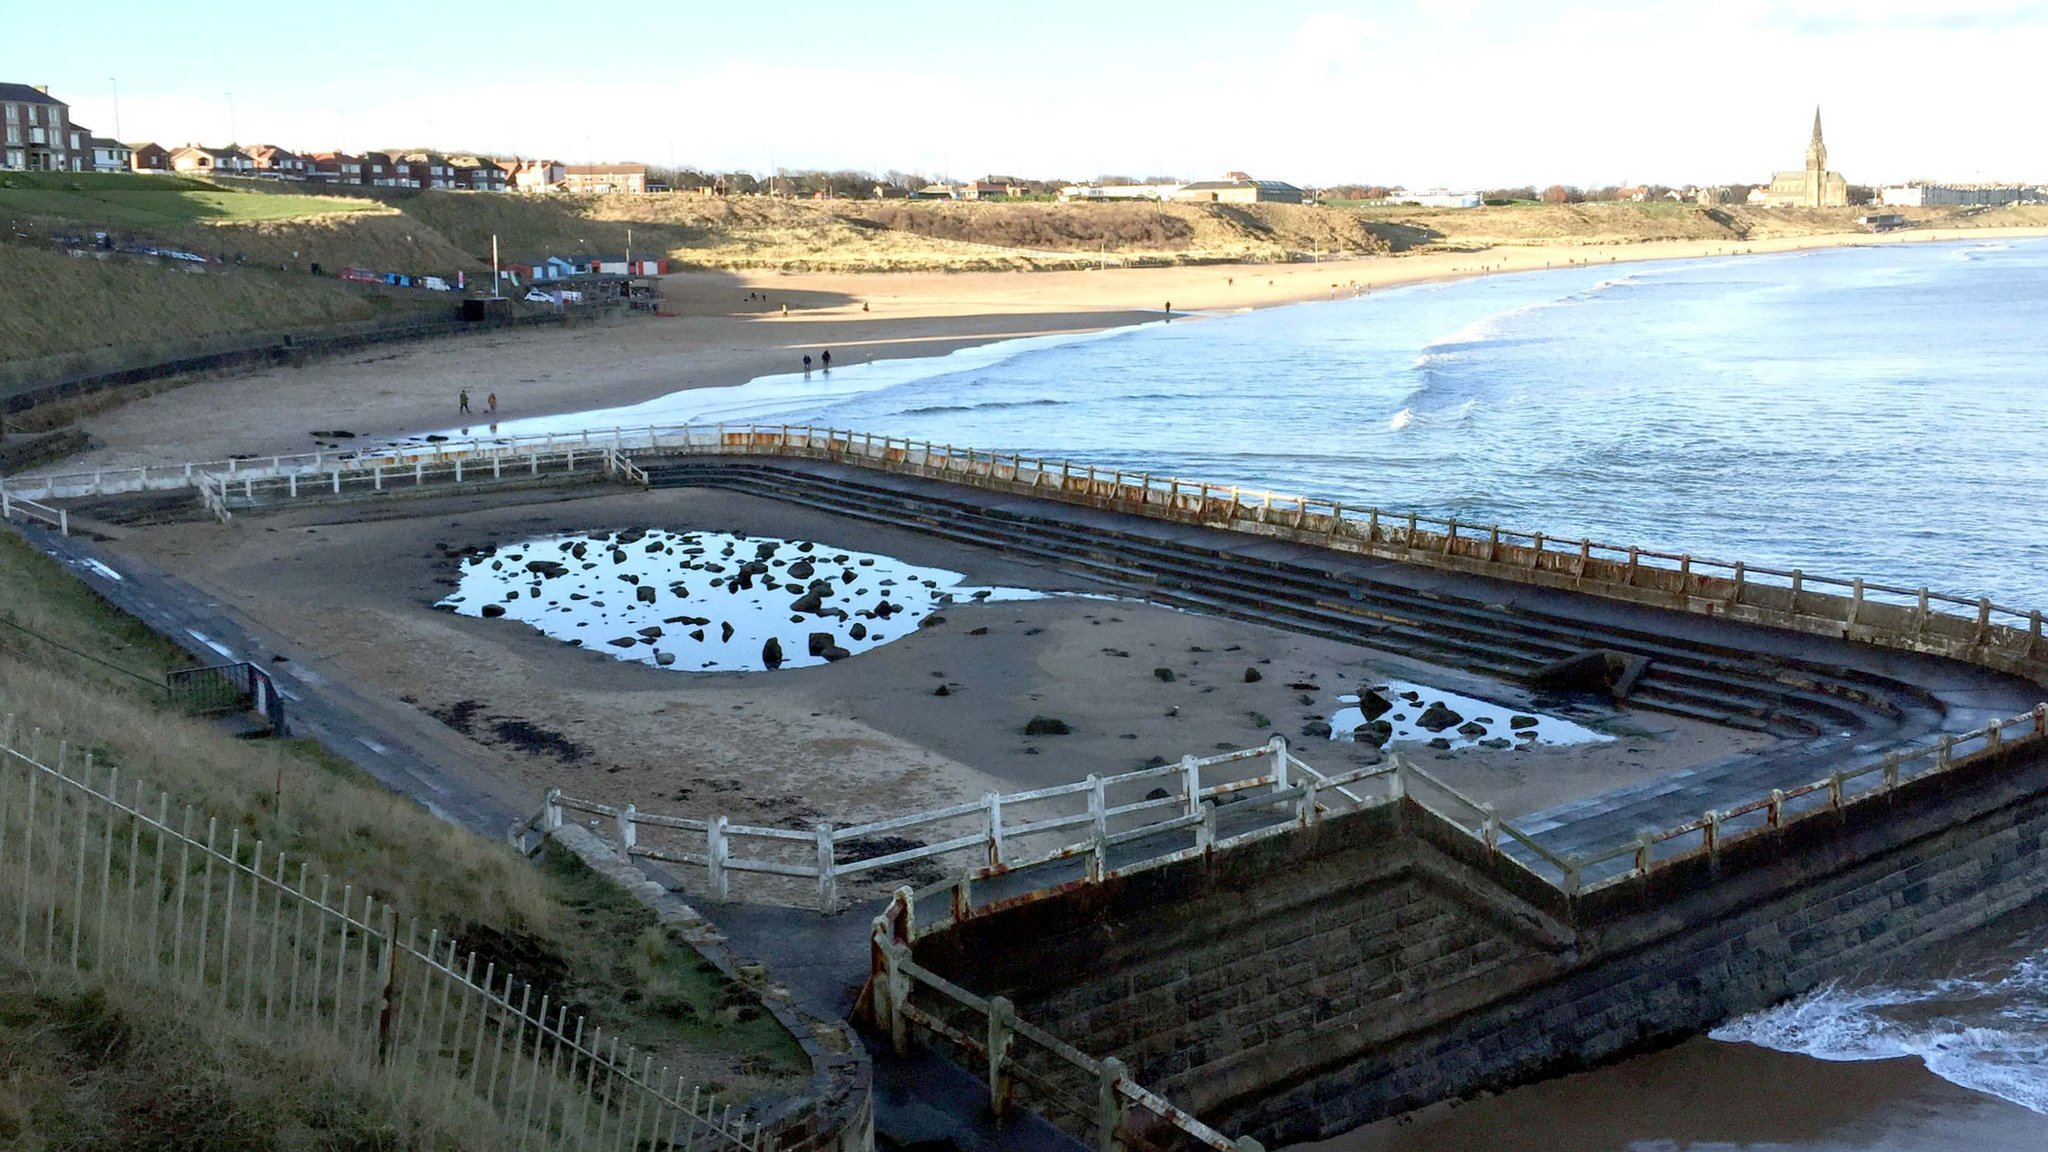 Tynemouth Outdoor Pool is now derelict